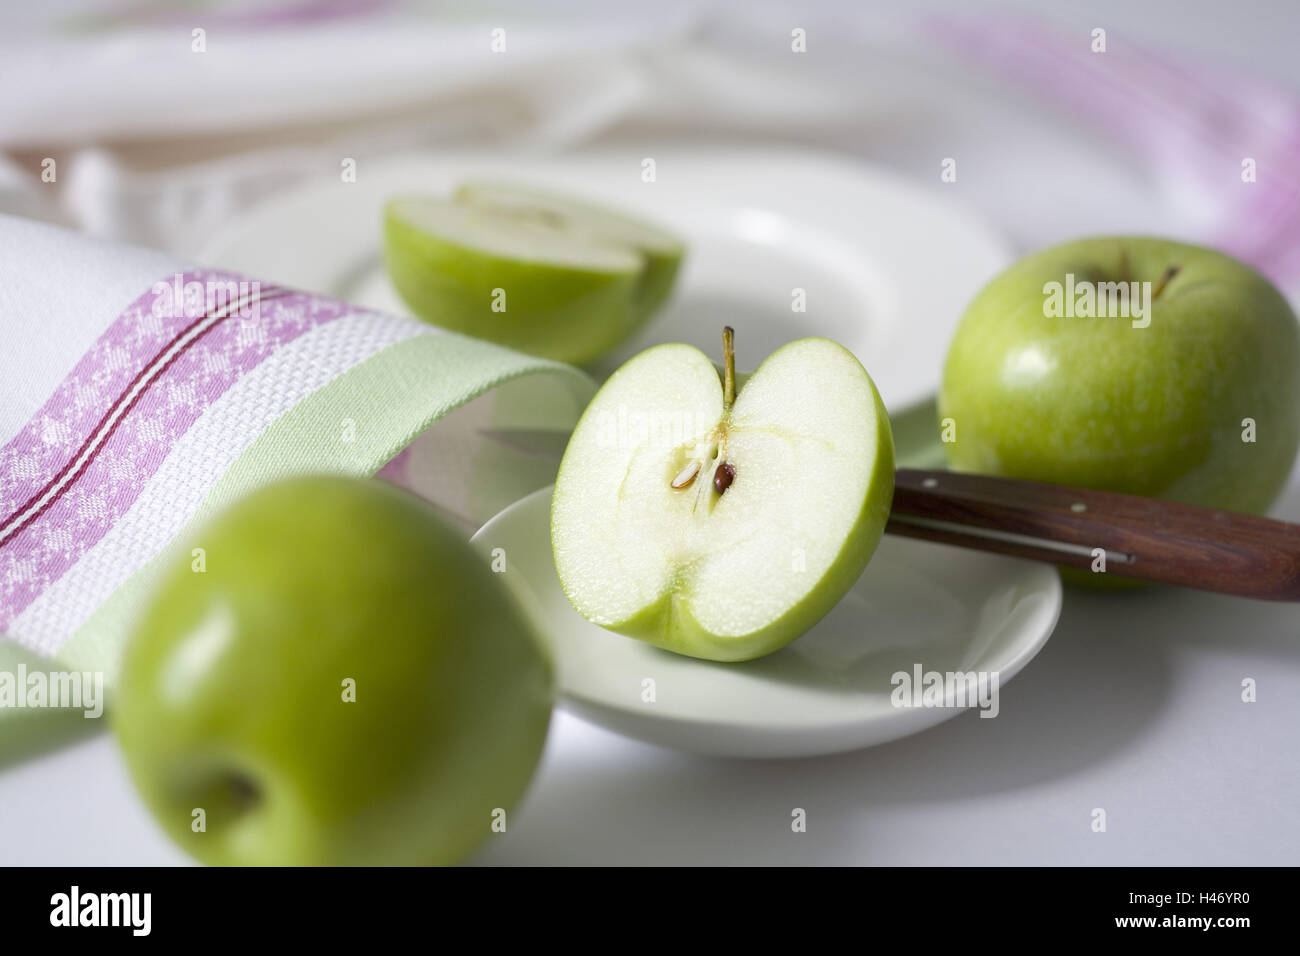 Two apples and a divided apple, sort 'Granny Smith', - Stock Image